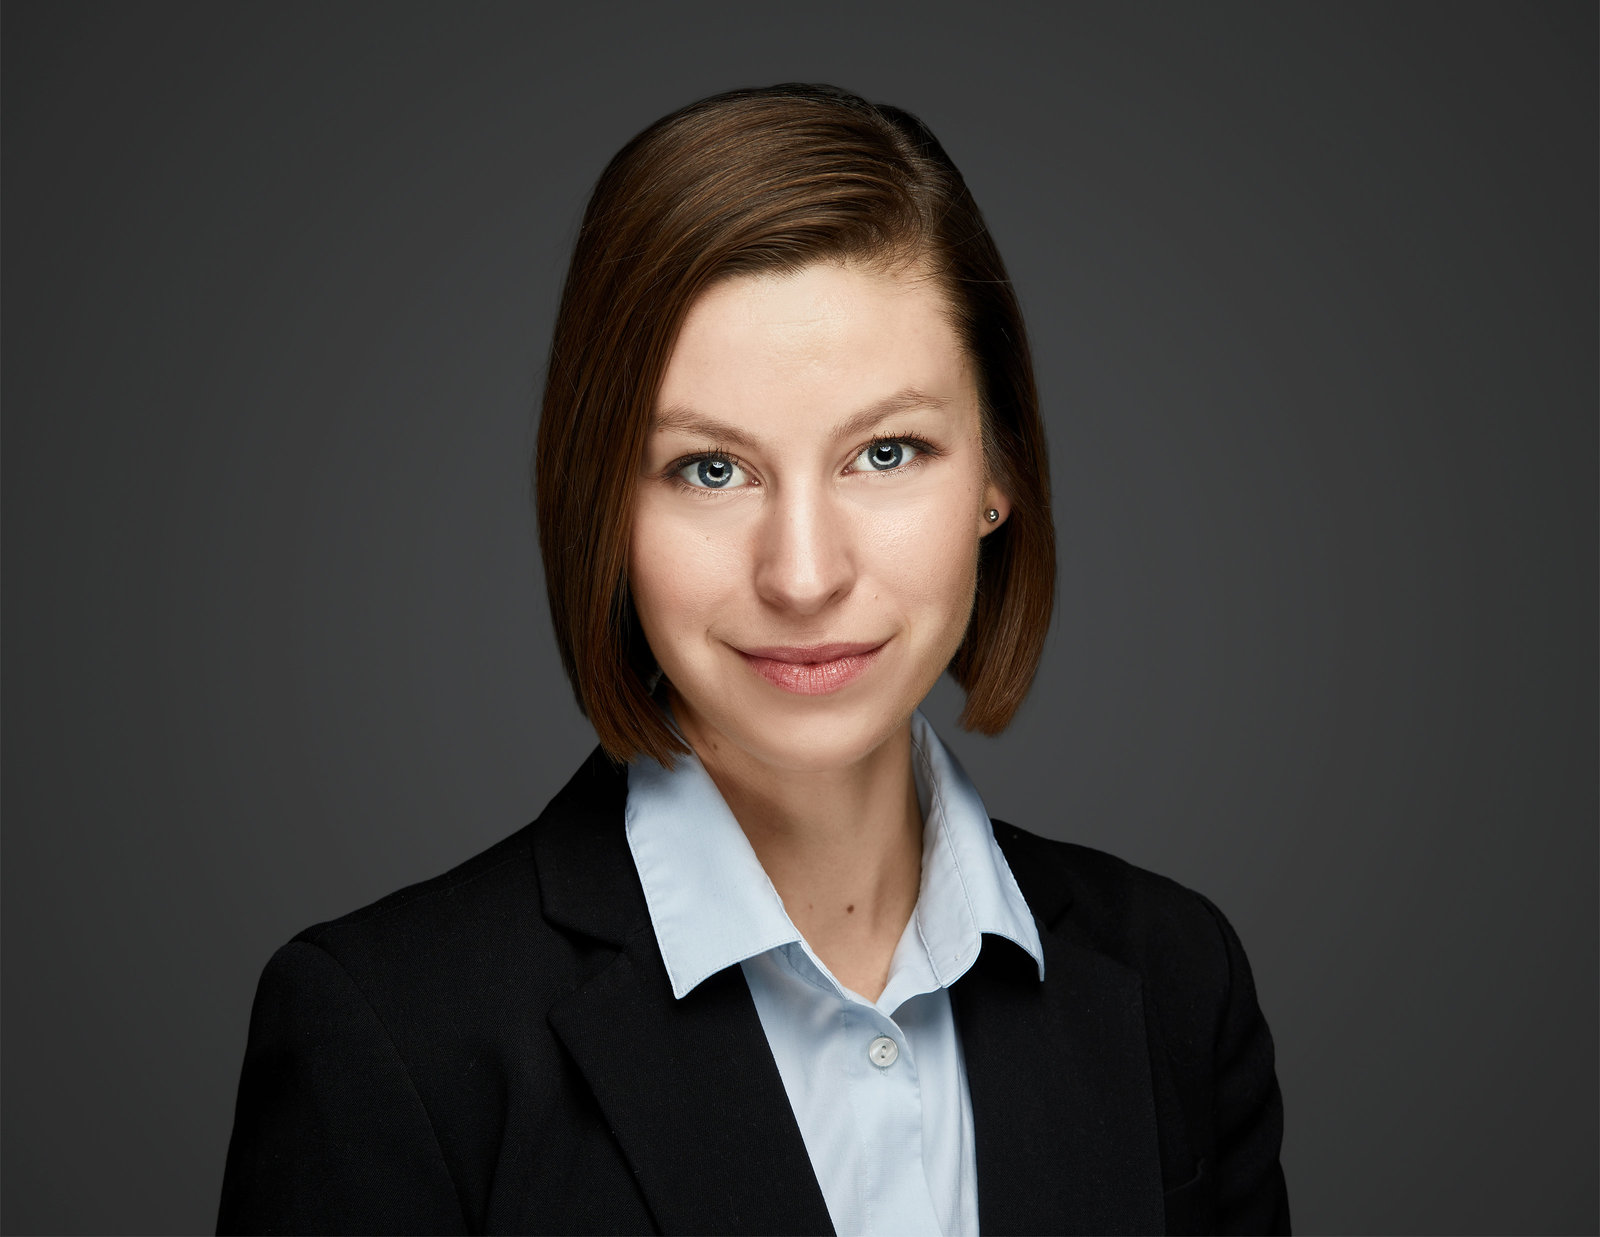 corporate headshot of woman